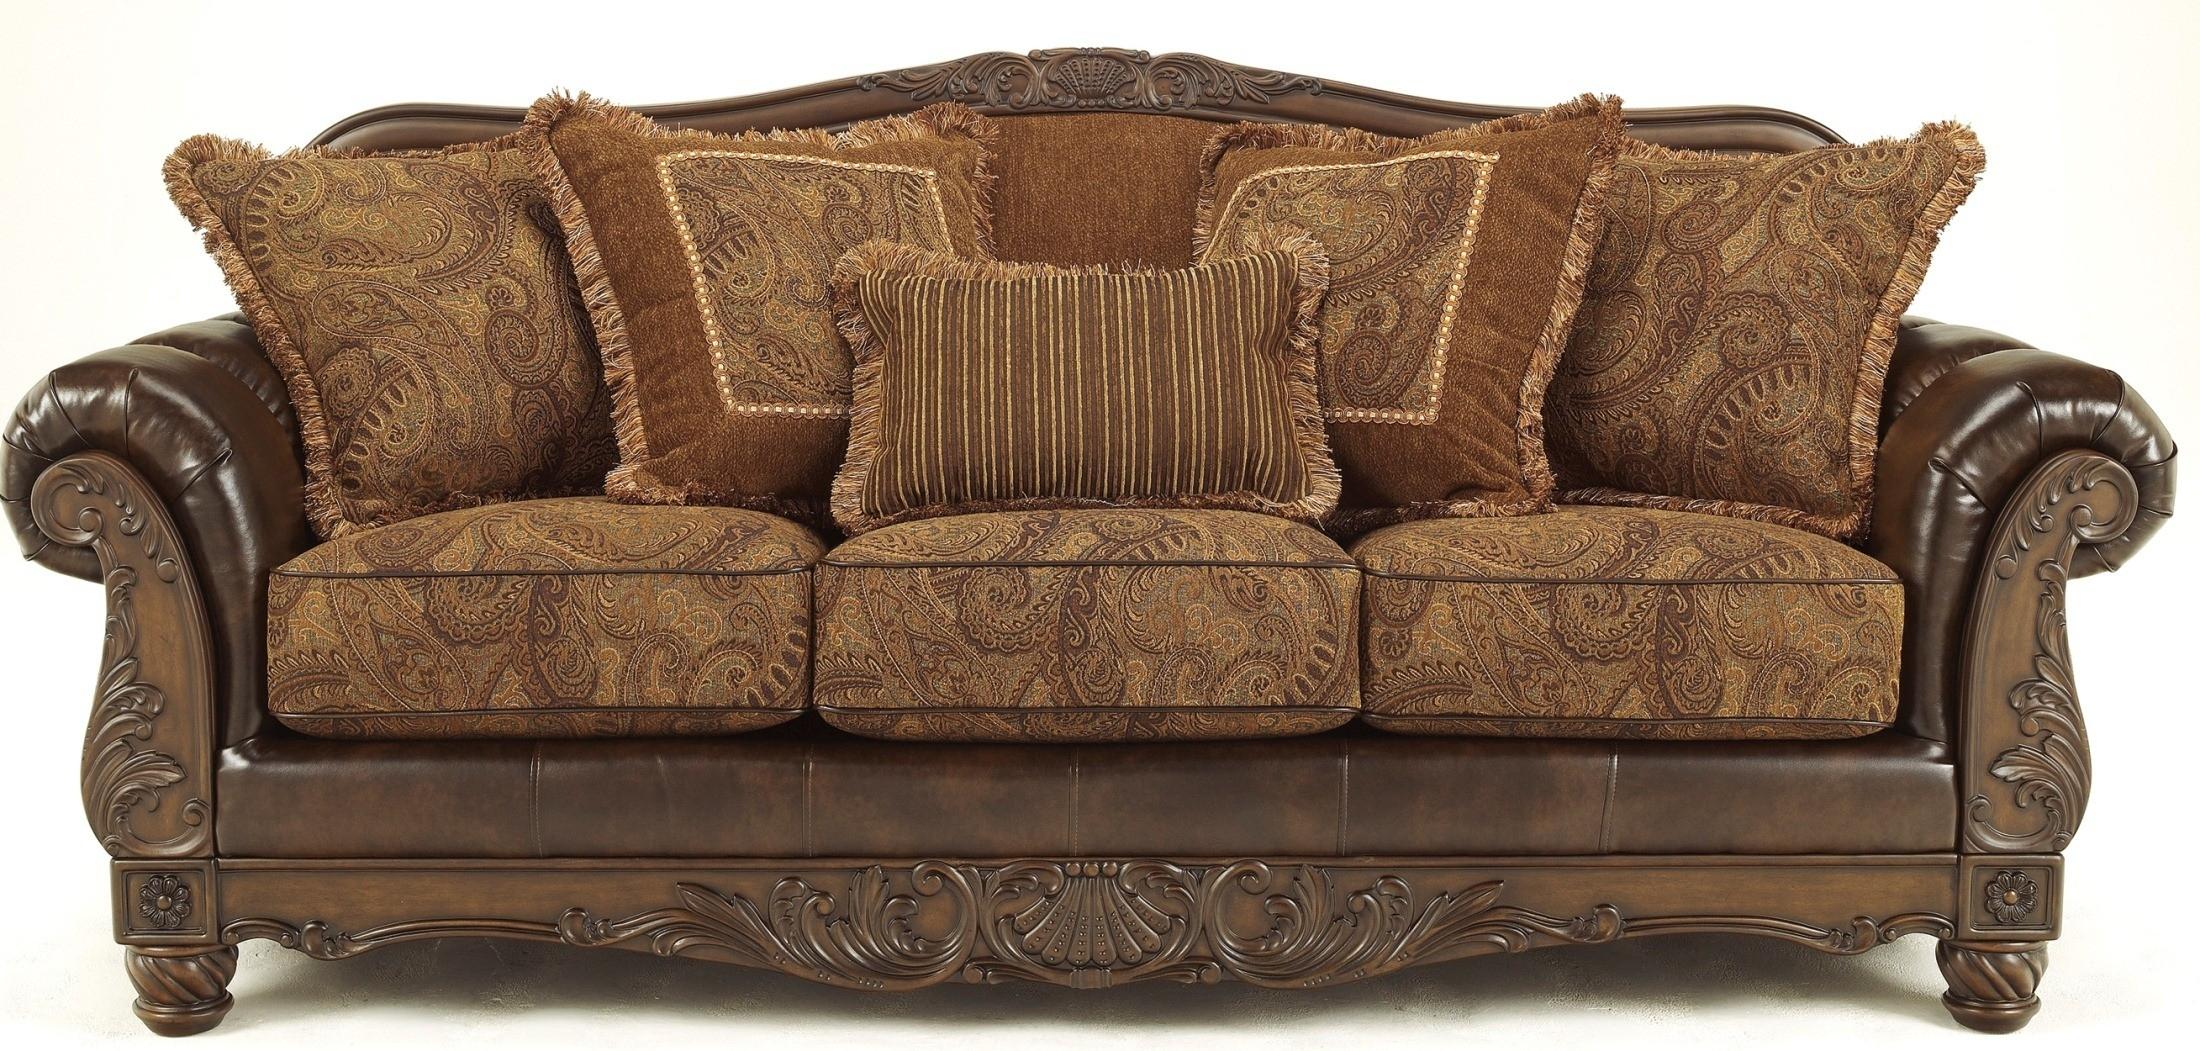 Fresco Durablend Antique Sofa From Ashley (6310038) | Coleman Furniture throughout Antique Sofas (Image 7 of 10)